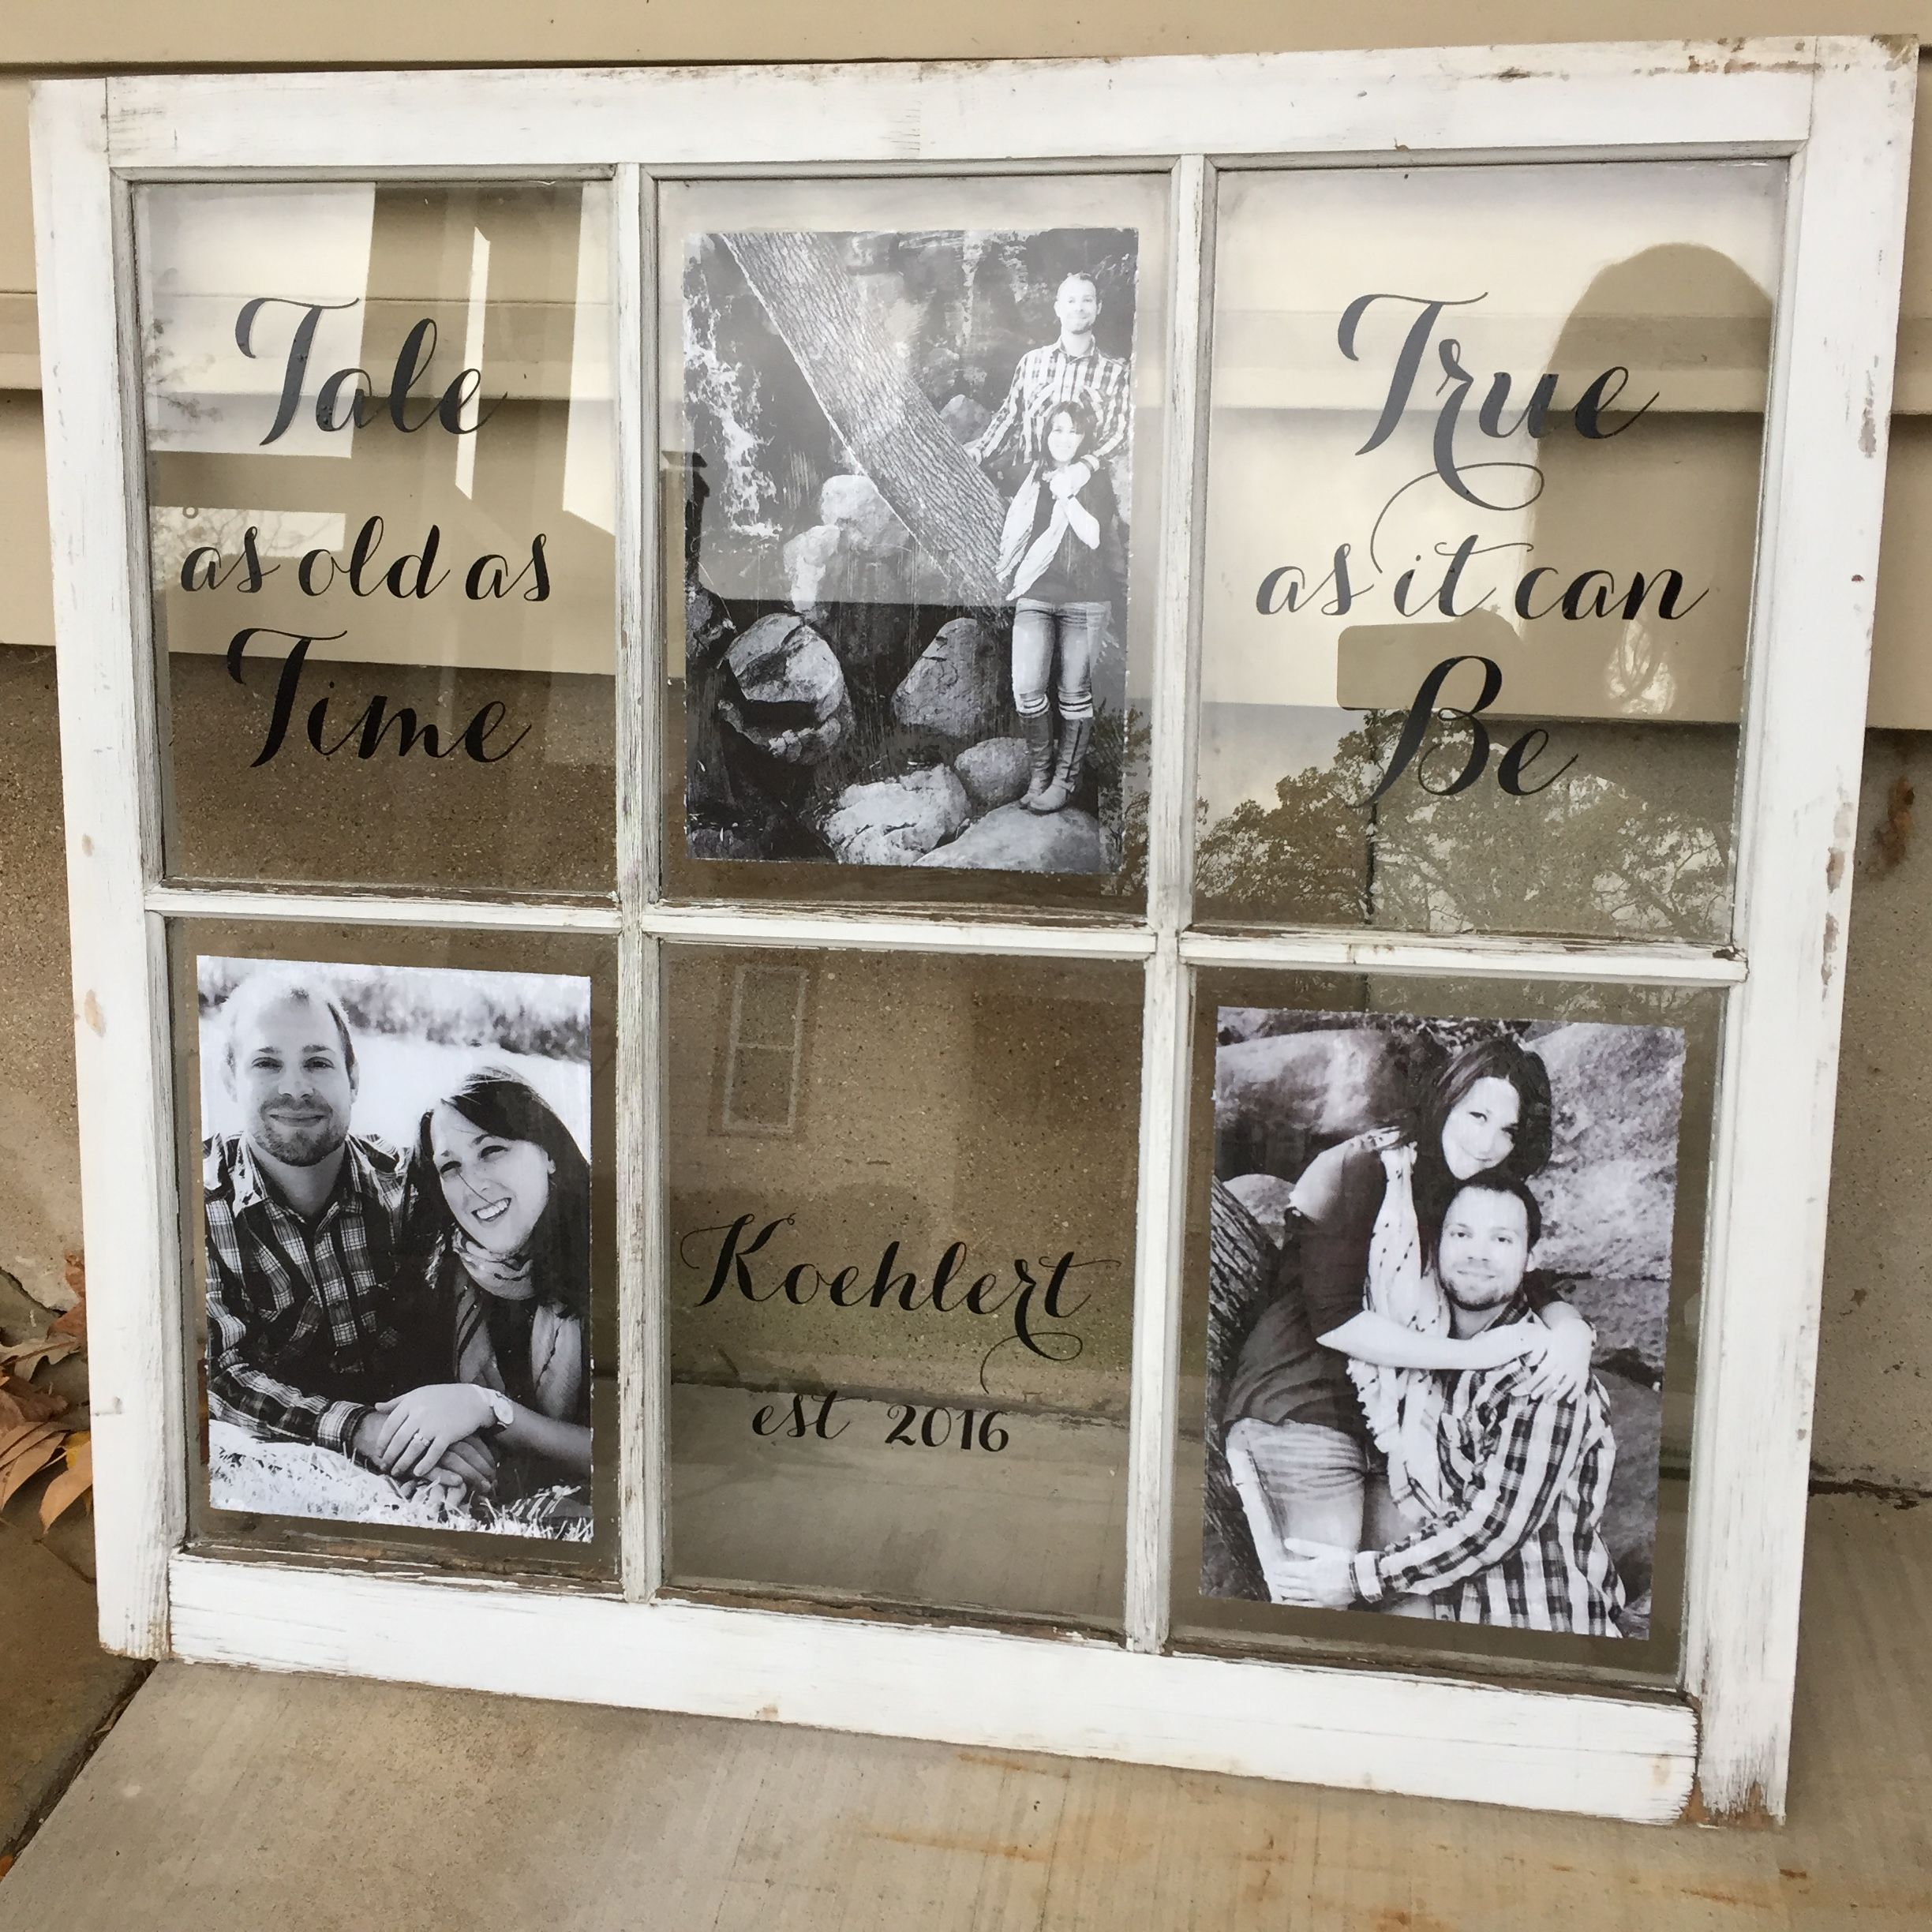 We Used Our Custom Decals And This Customer S Engagement Photos On An Old Window Love How It Turned Out Old Window Crafts Window Crafts Window Frame Decor